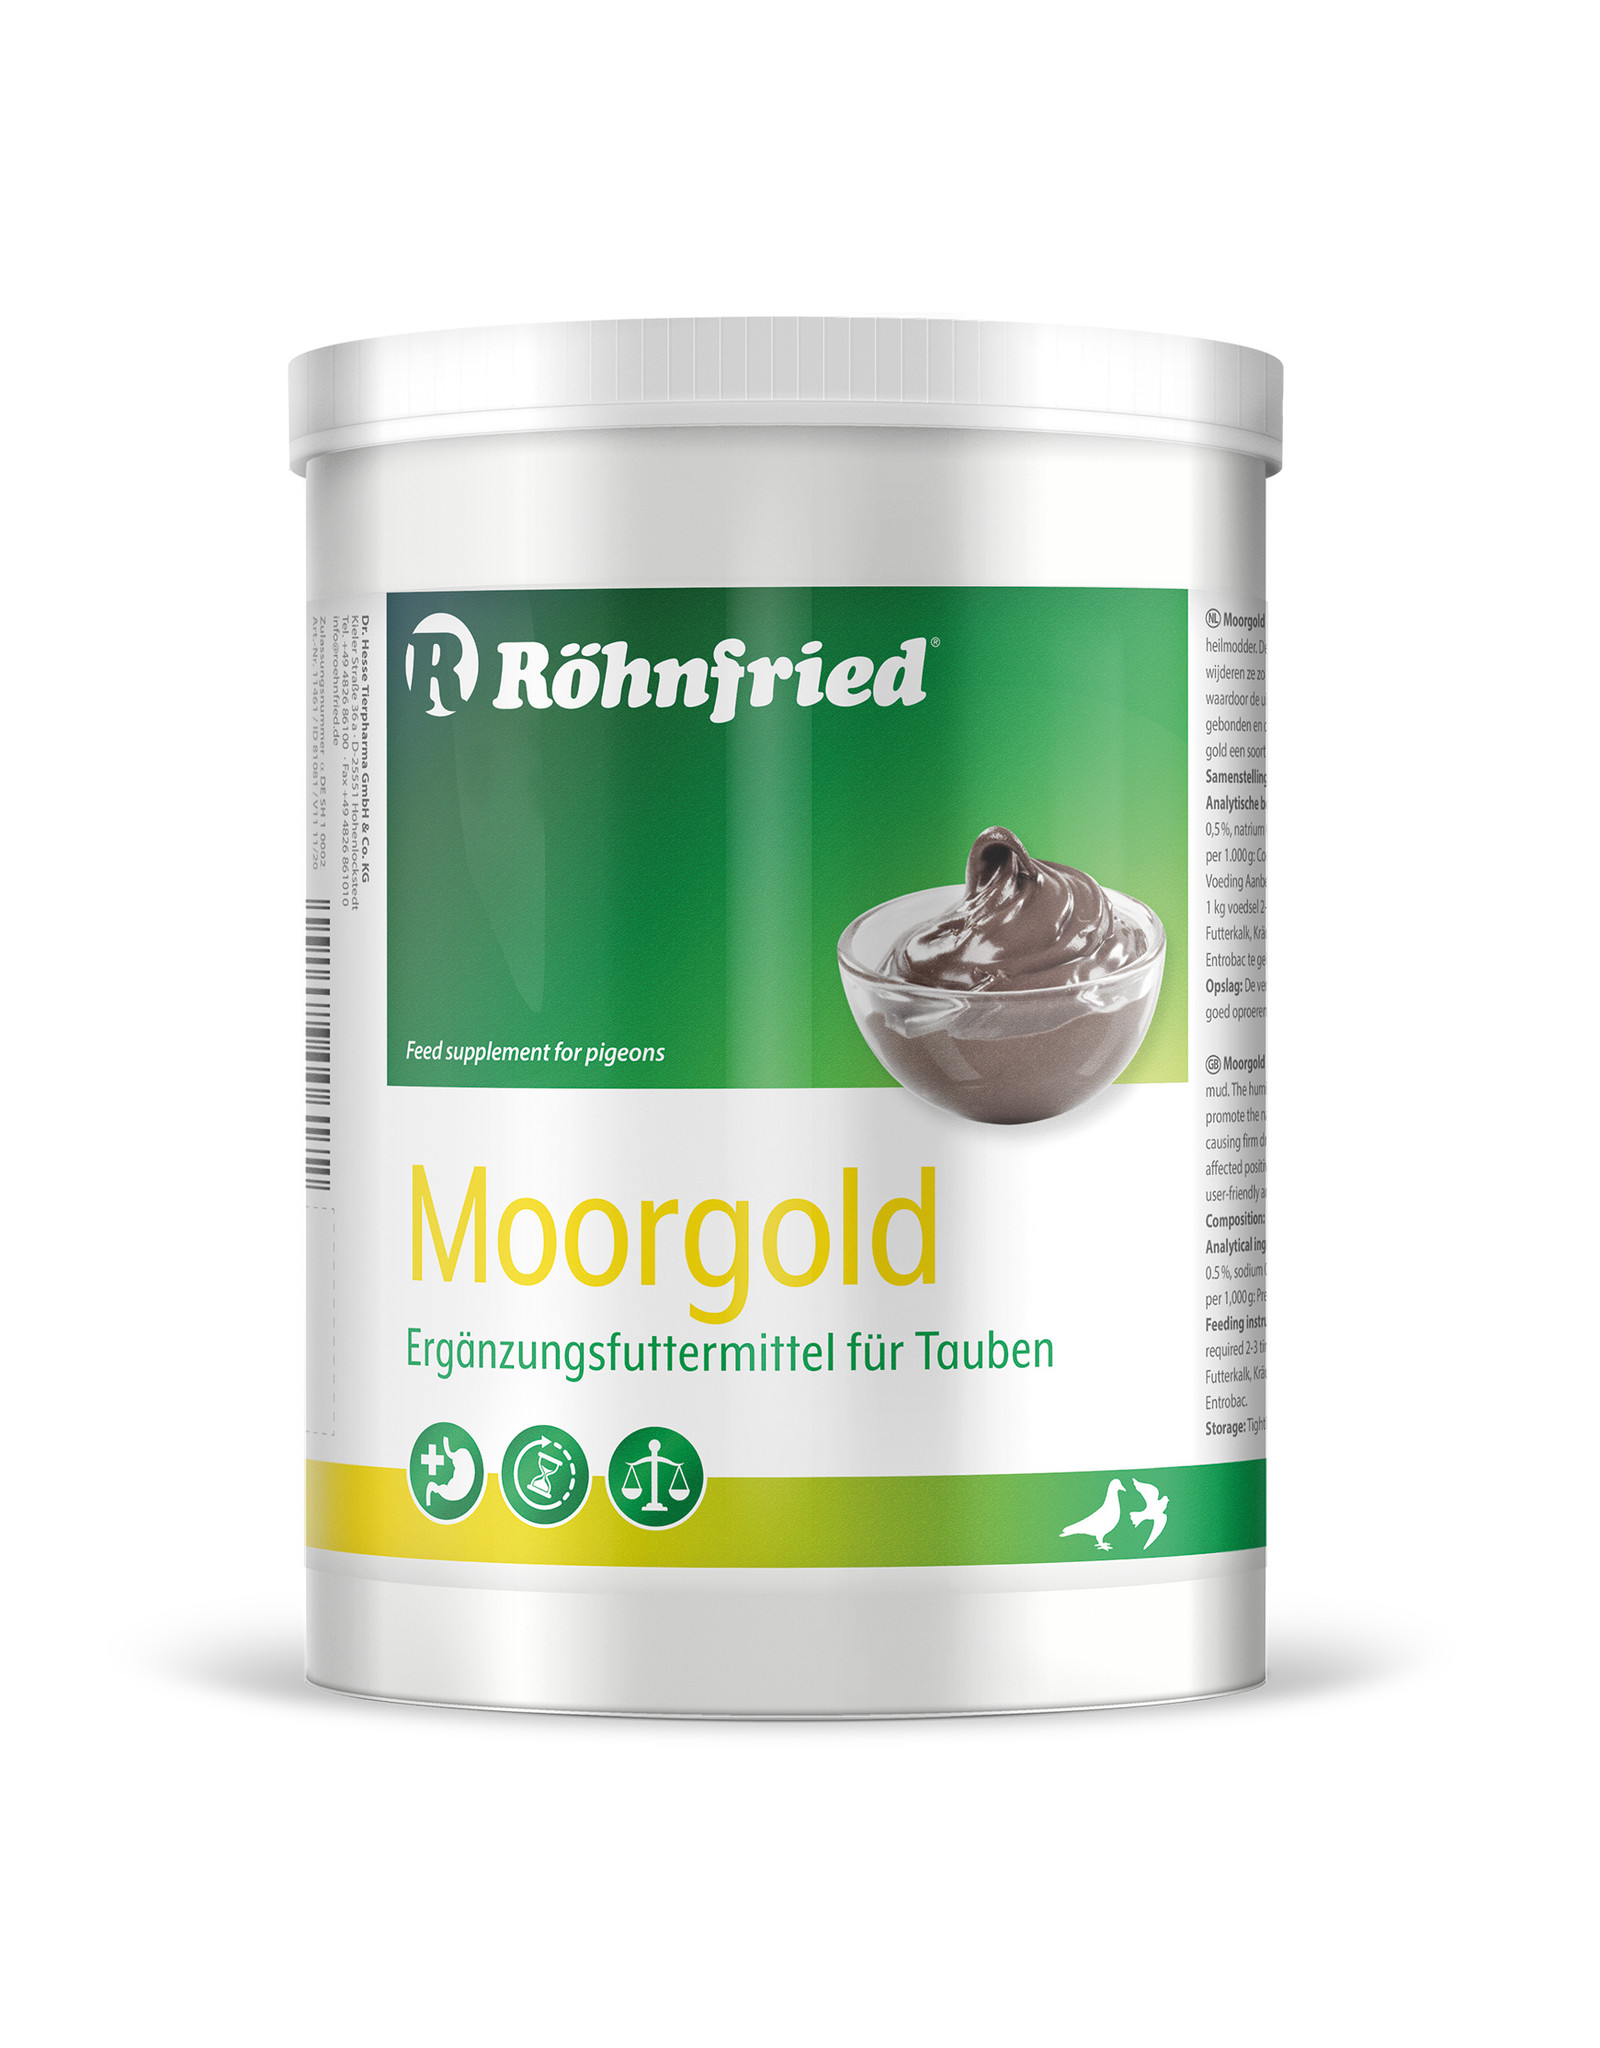 Röhnfried Moorgold Rohnfried - 1 Liter